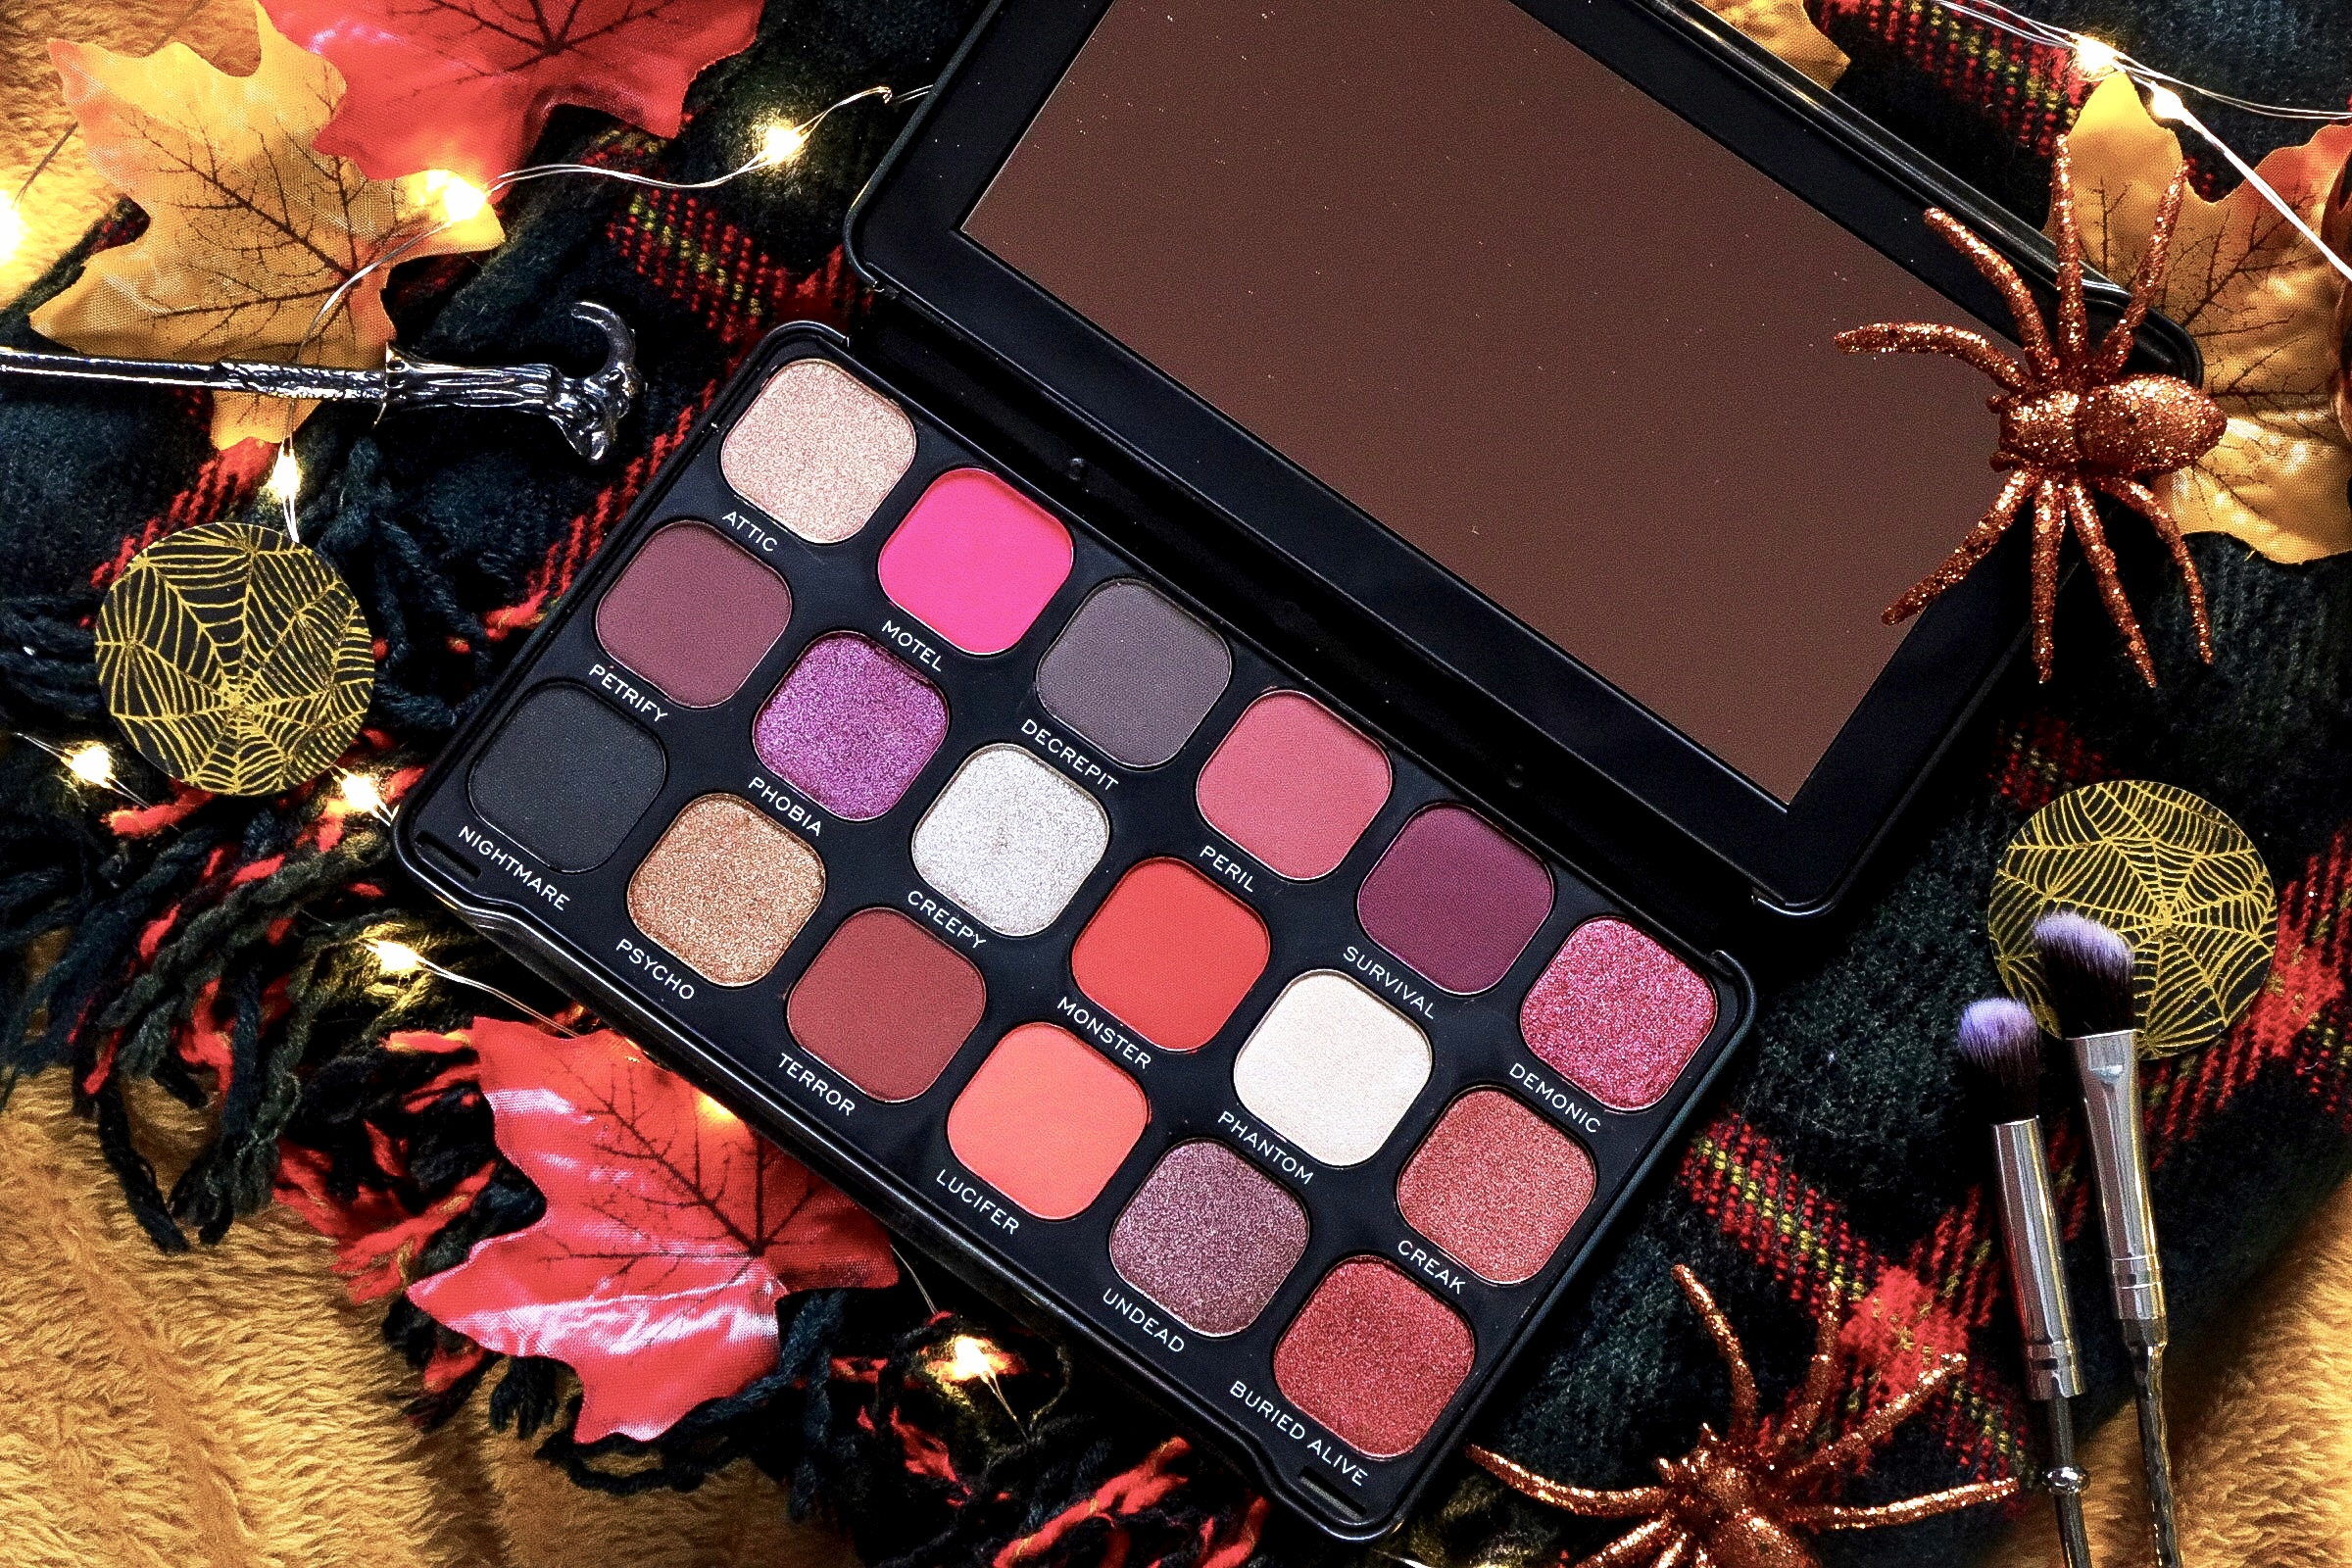 MAKEUP REVOLUTION: FOREVER FLAWLESS HAUNTED HOUSE PALETTE REVIEW, SWATCHES & PHOTOS